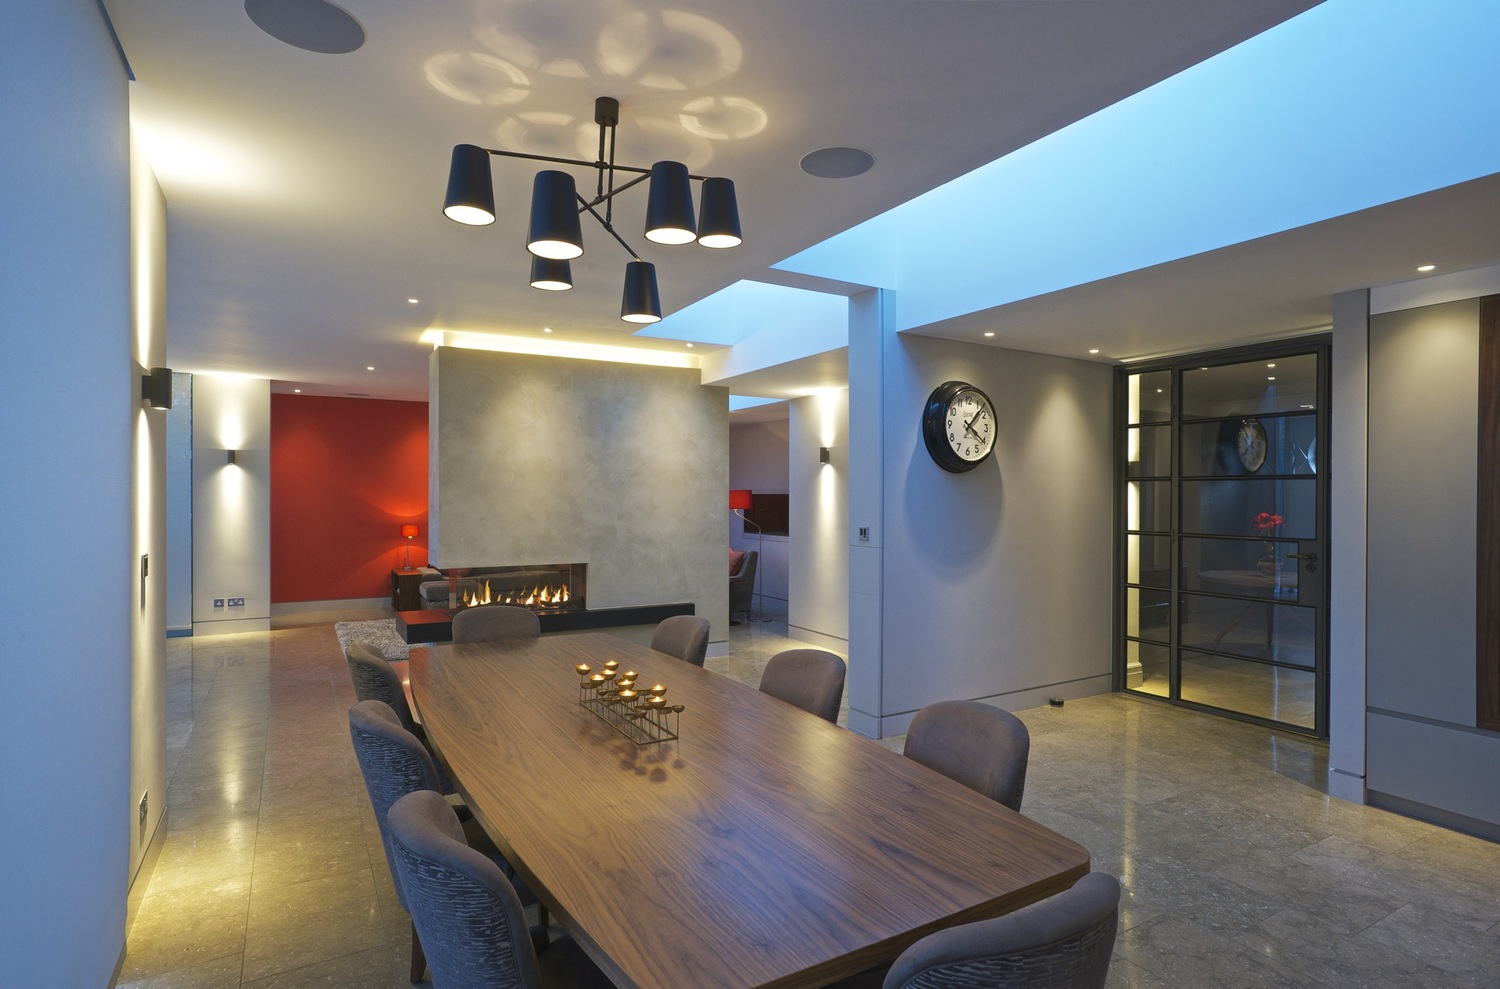 sian baxter lighting design  residential and commercial lighting  - fife sian baxter lighting design sbl